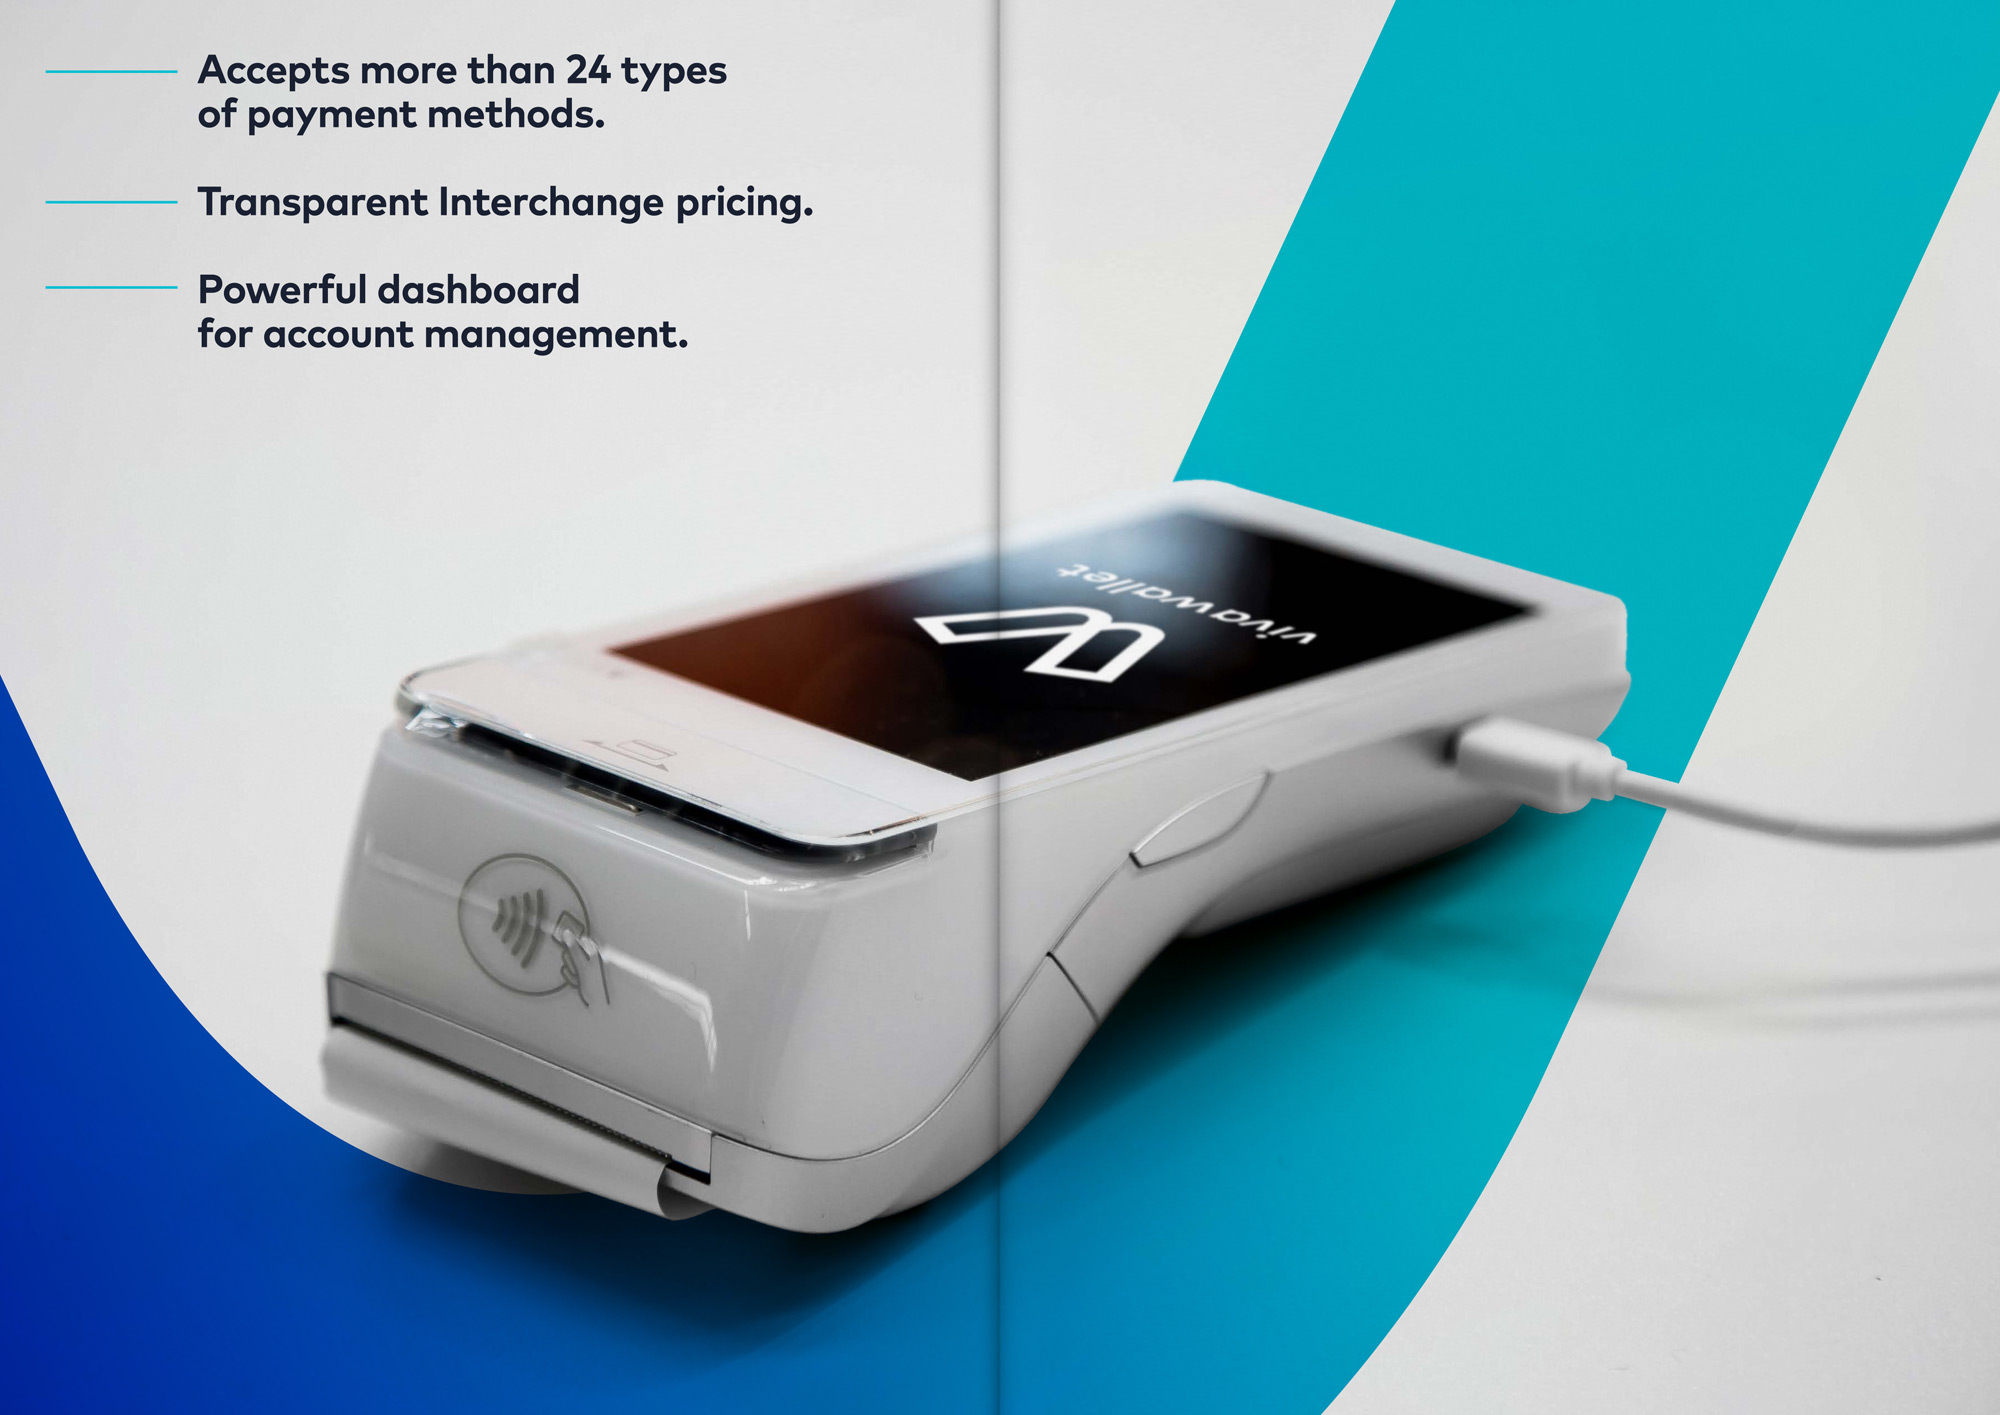 Viva Wallet rebranding a global fitech payments Insitution Athens London Brussels Amsterdam Paris POS terminal